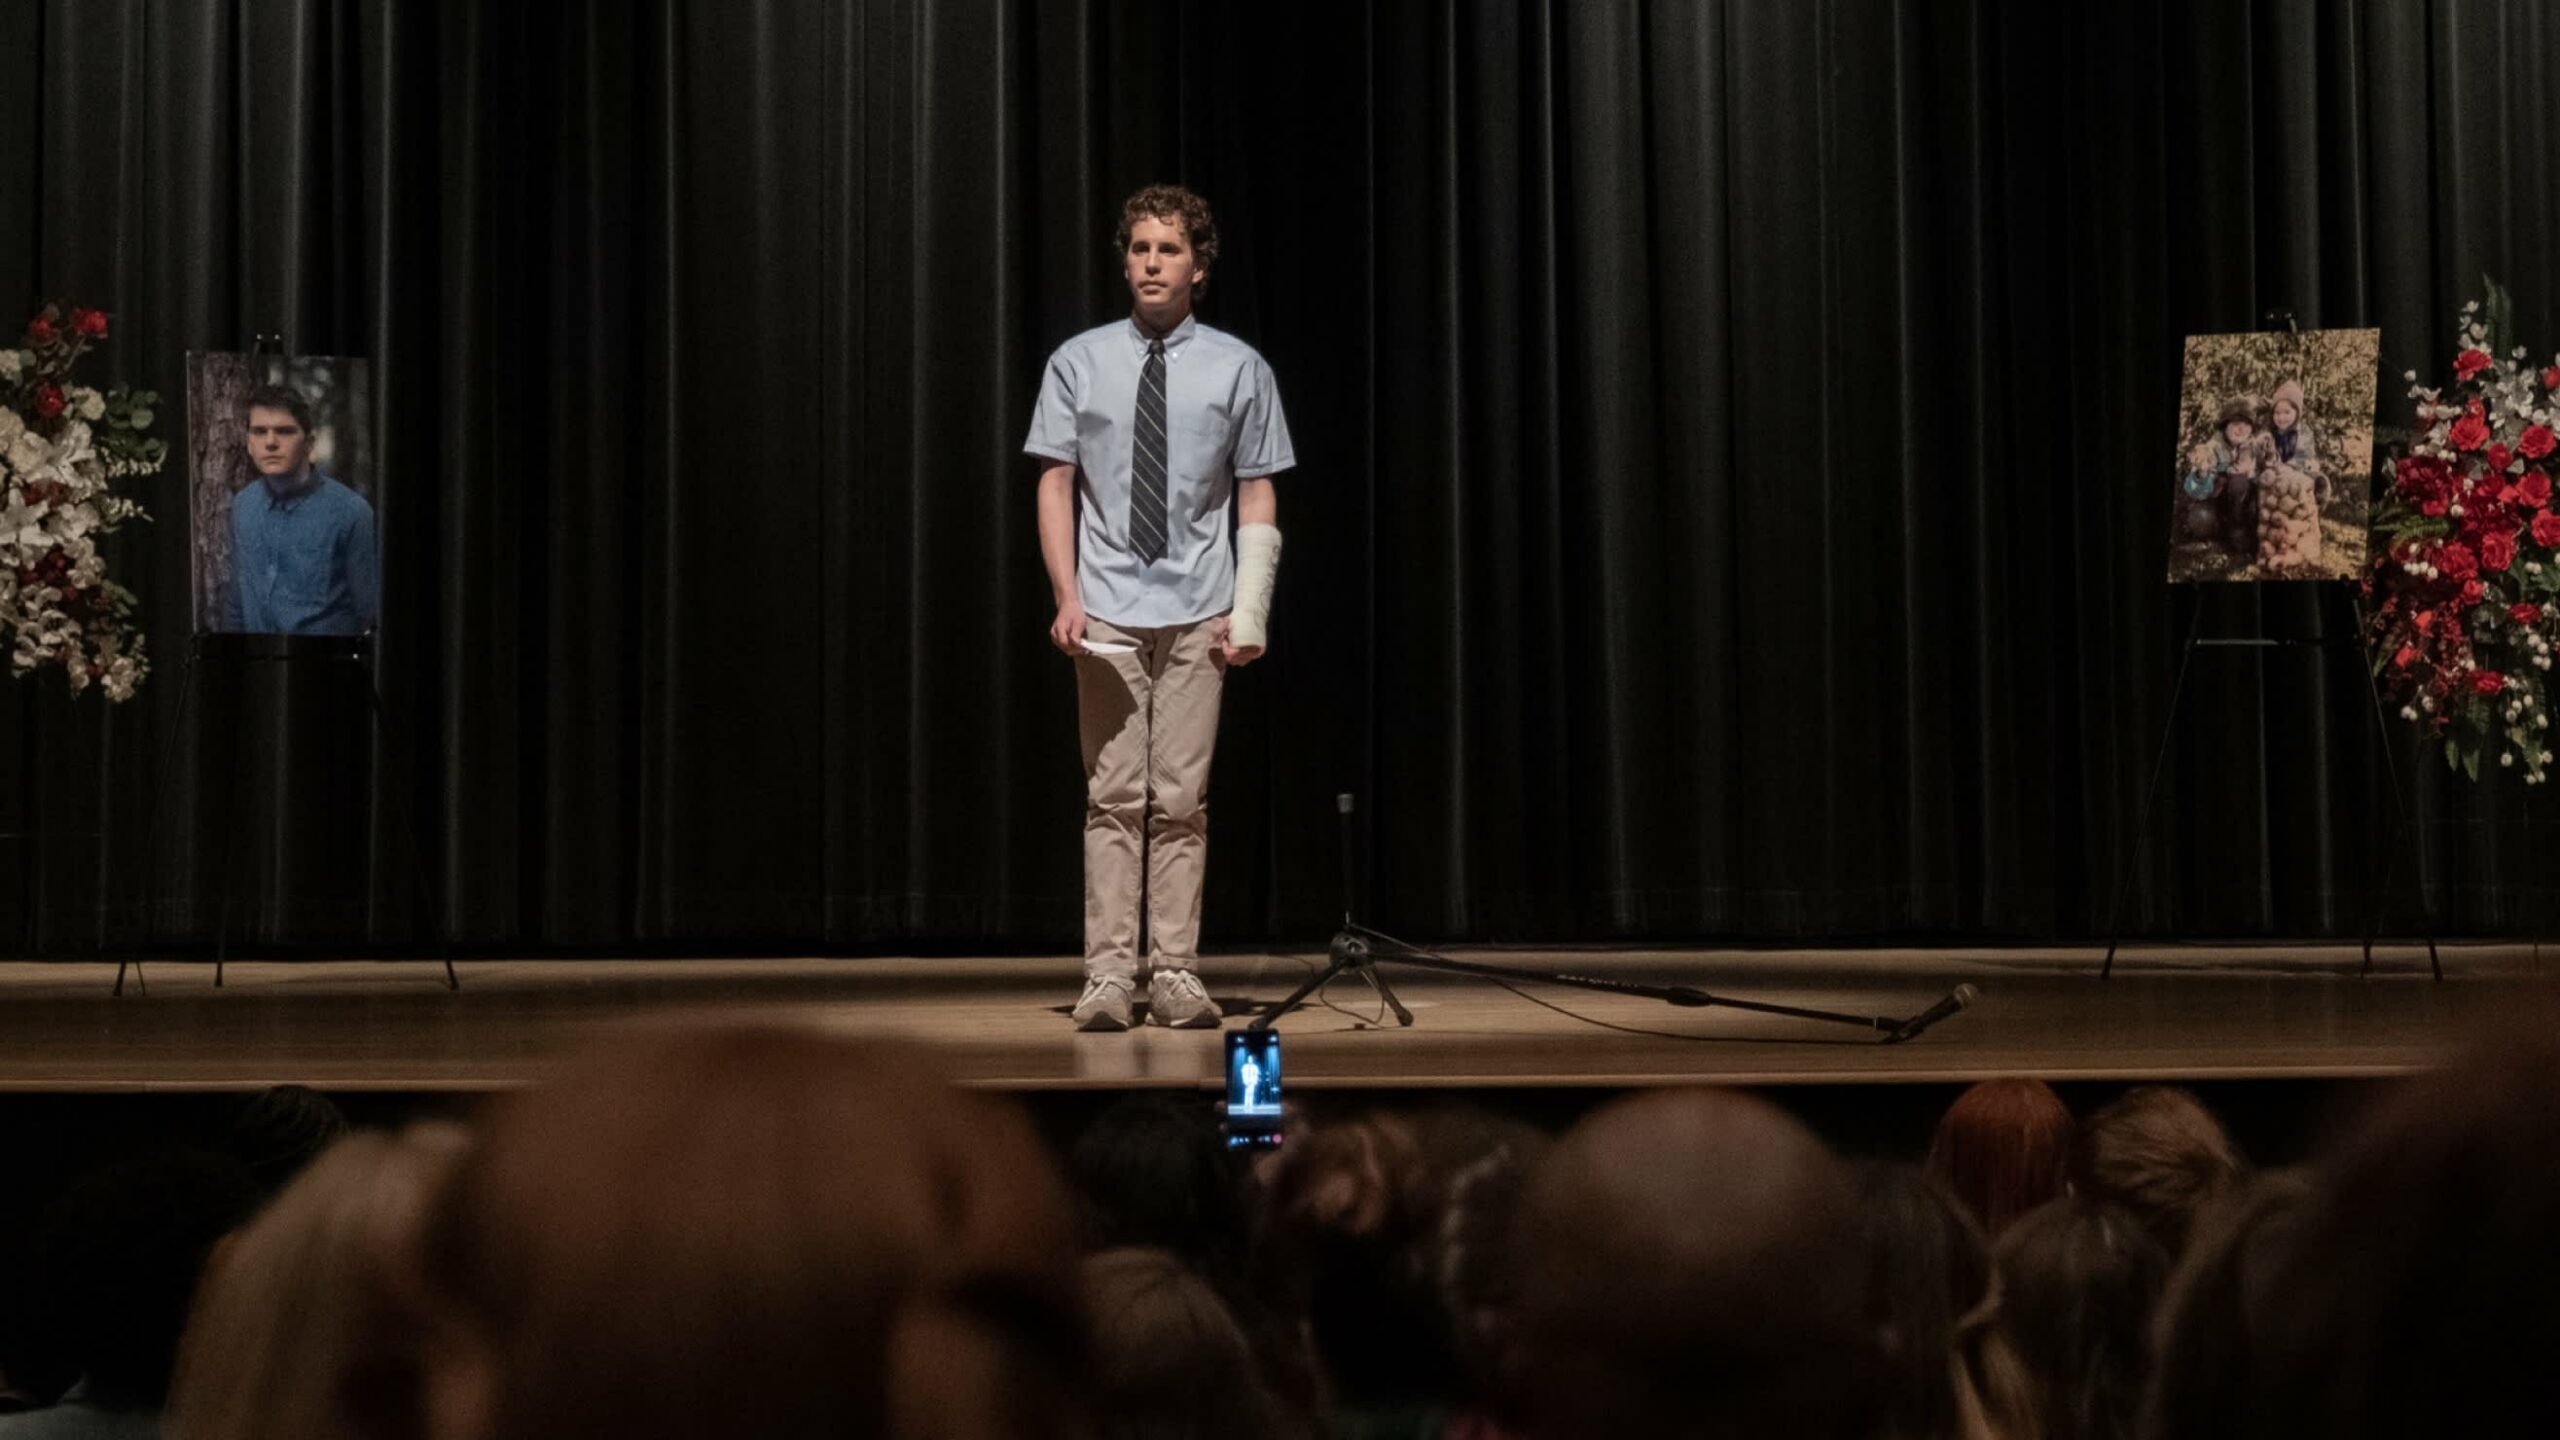 'Dear Evan Hansen' opens with $7.5 million at domestic box office